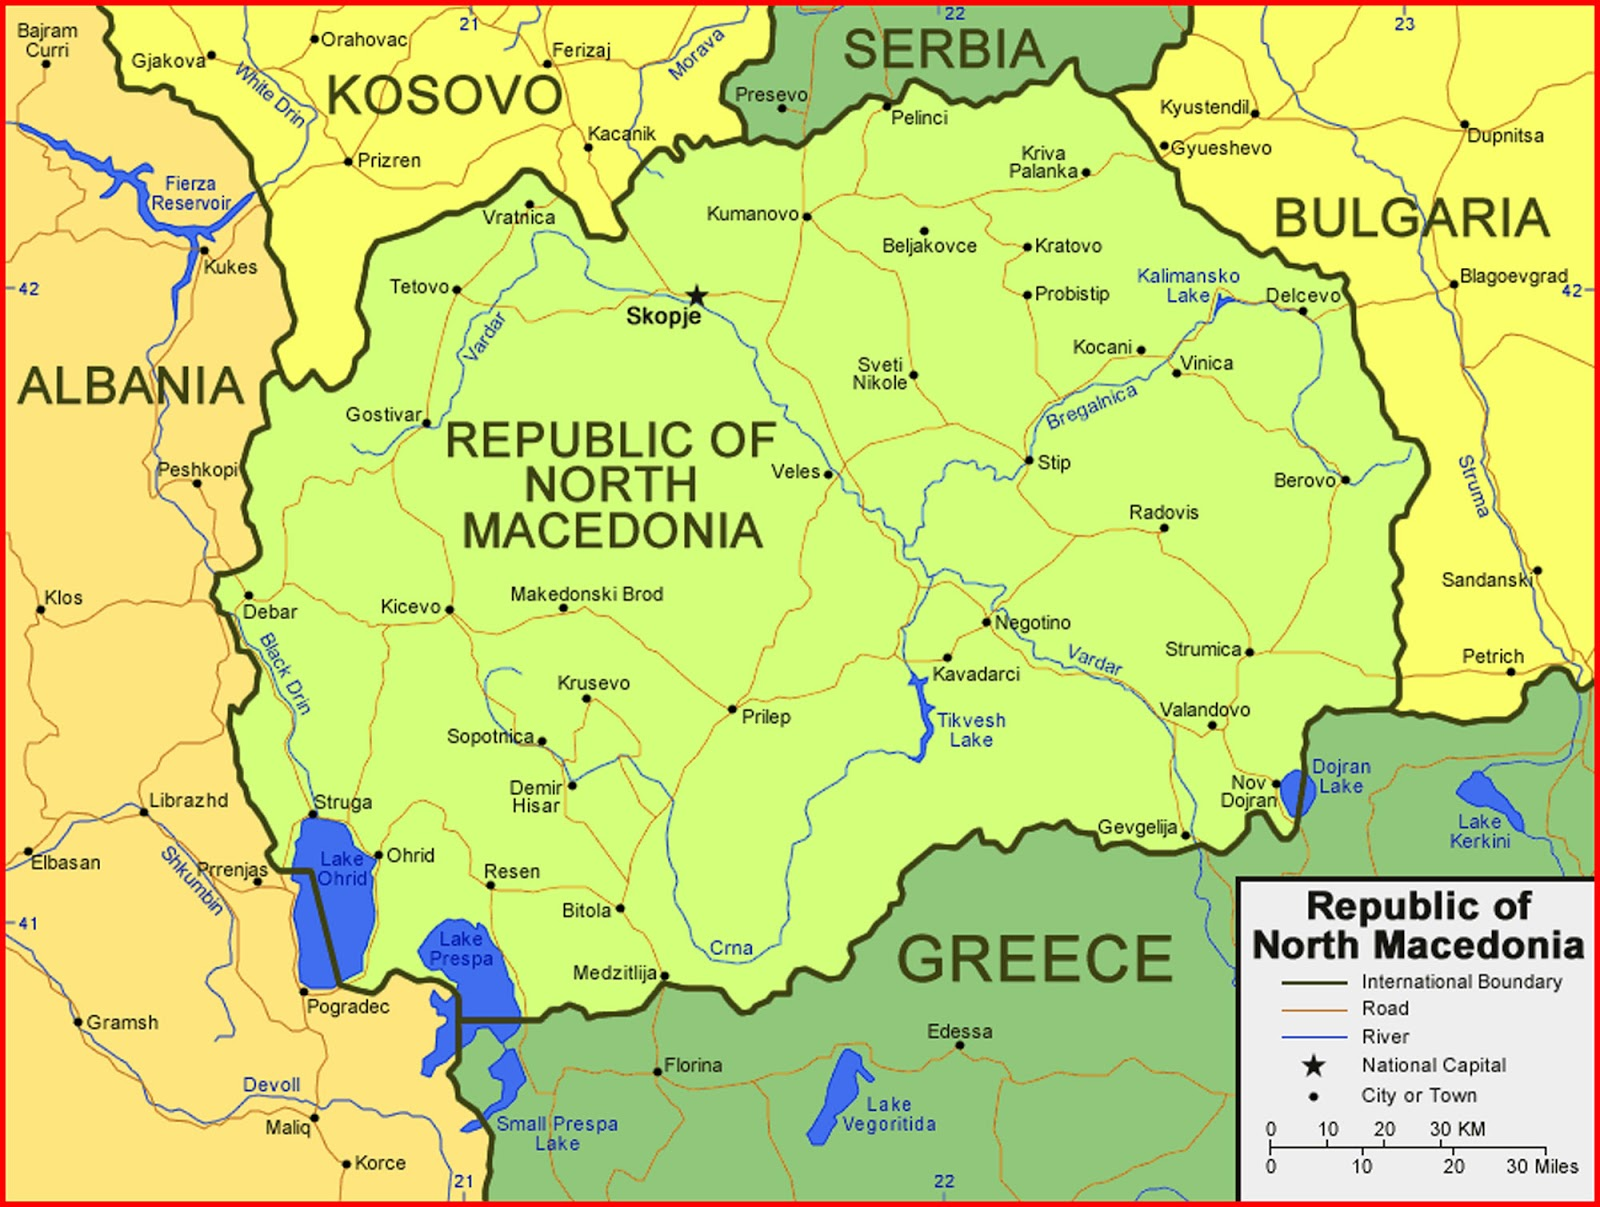 image: Republic of North Macedonia Map High Resolution